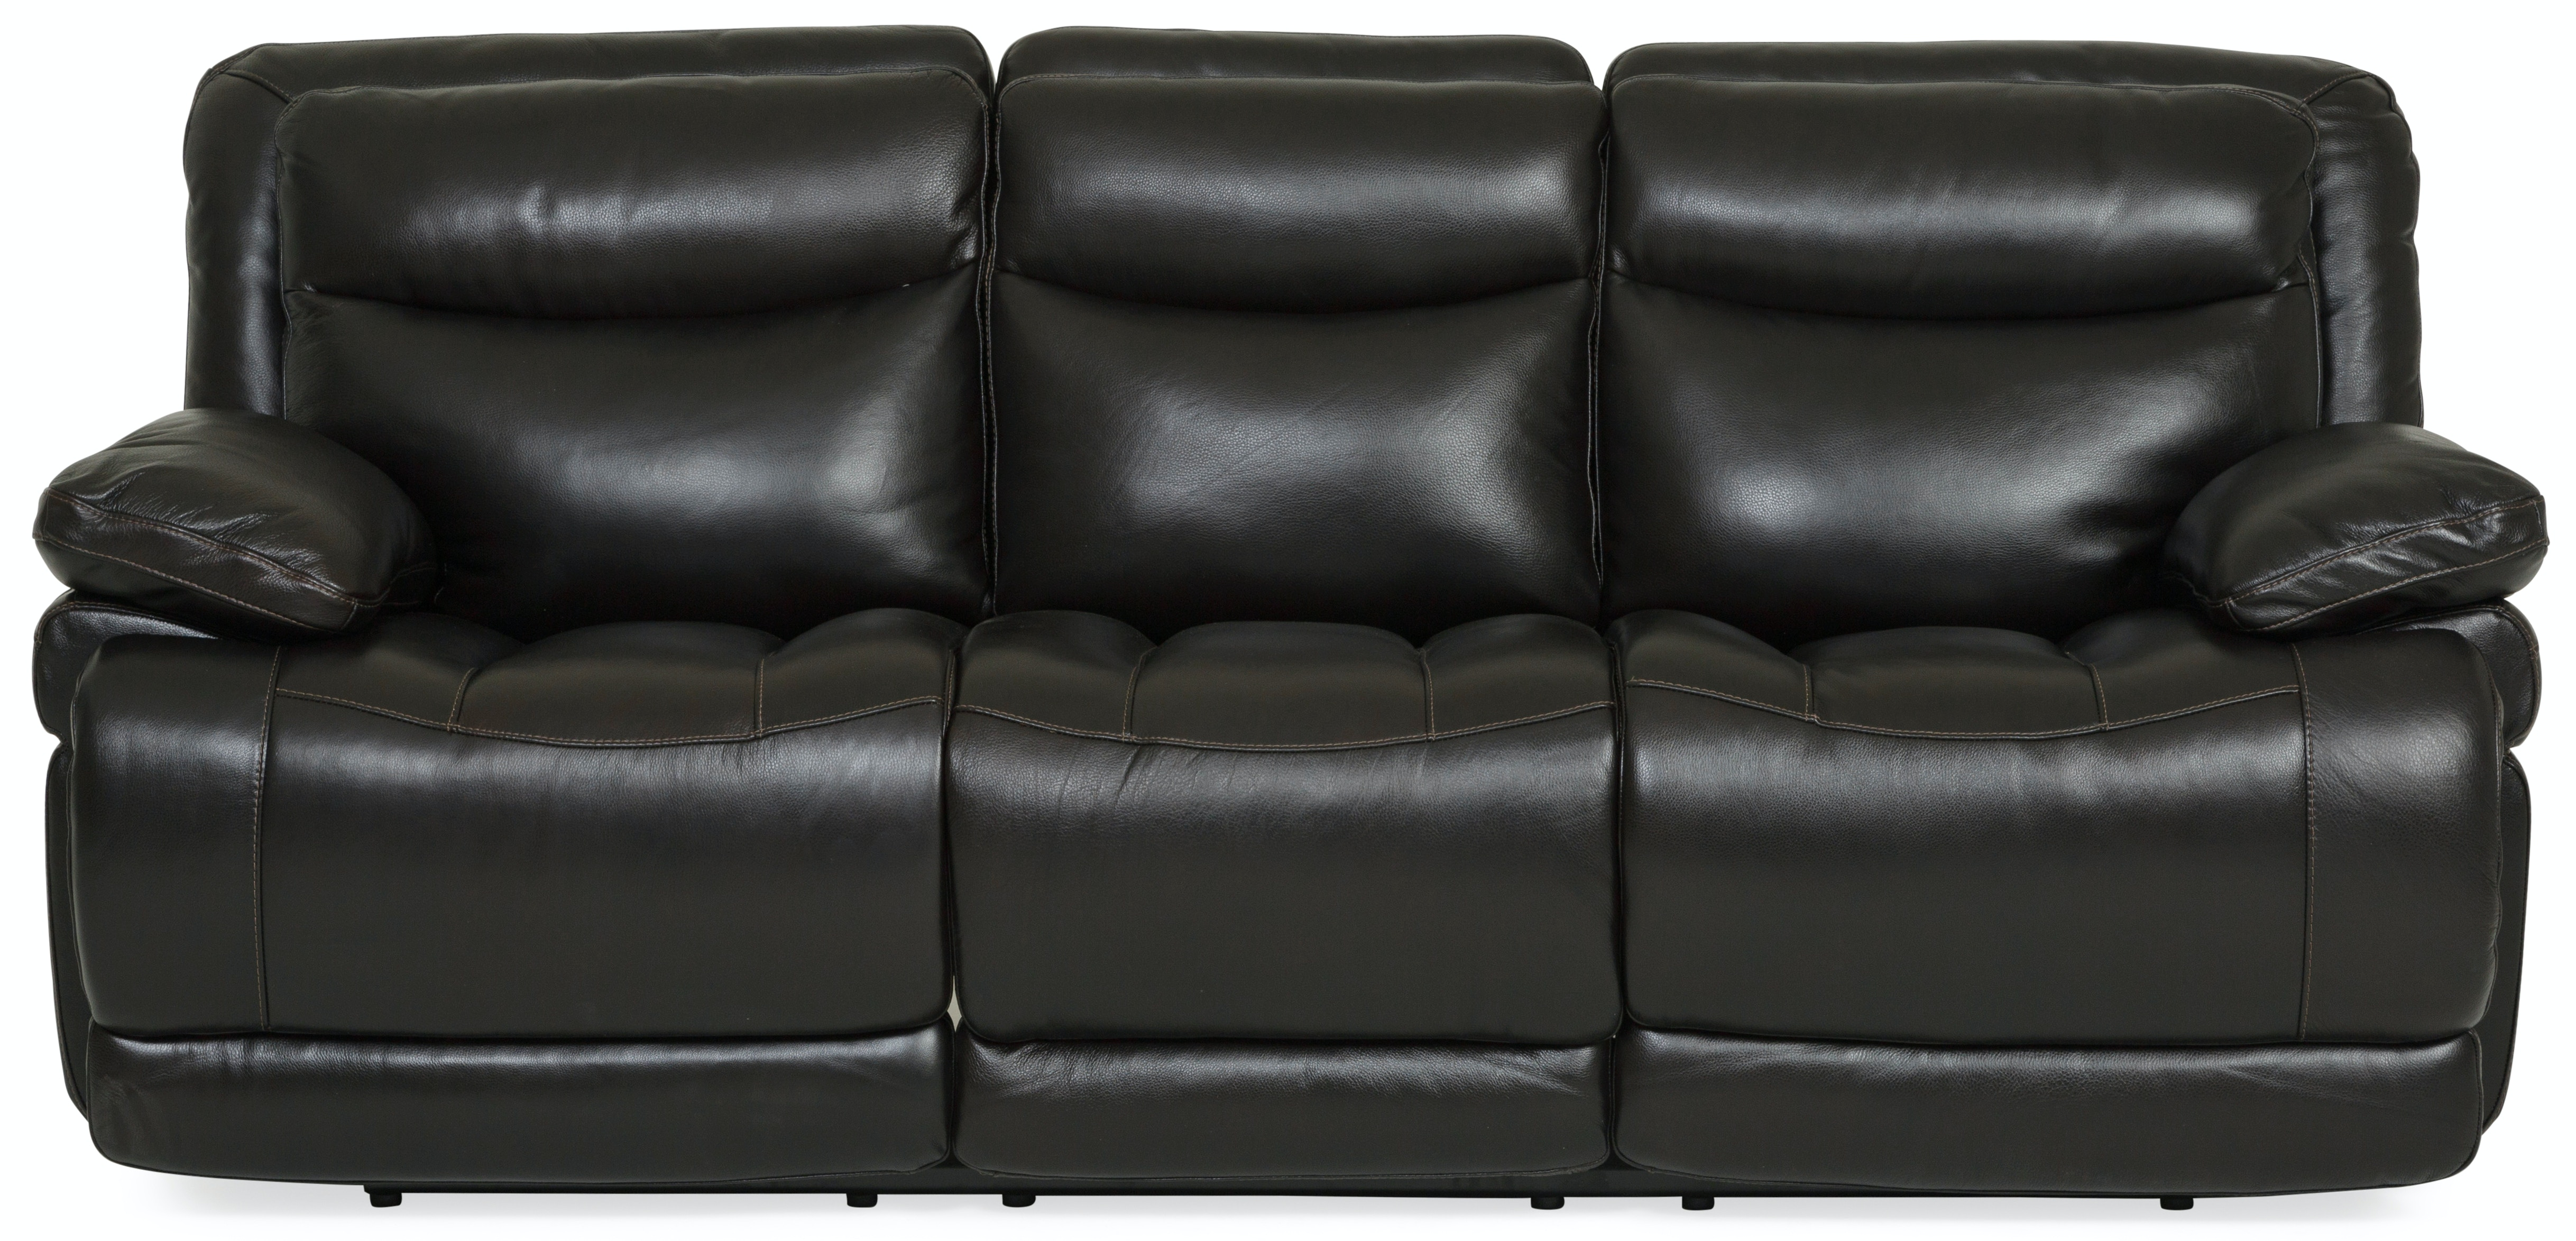 Beautiful Longhorn Leather Power Reclining Sofa   BLACKBERRY ST:422713